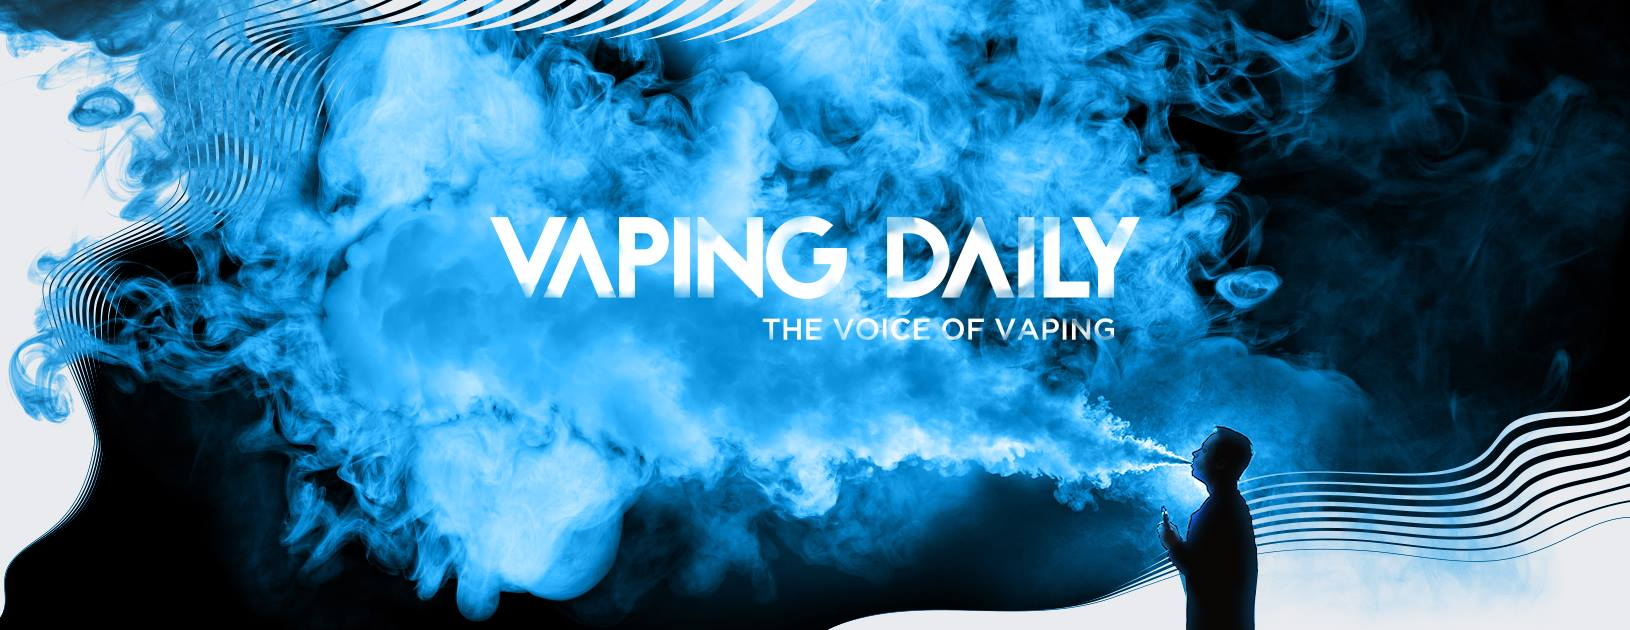 Vaping Daily